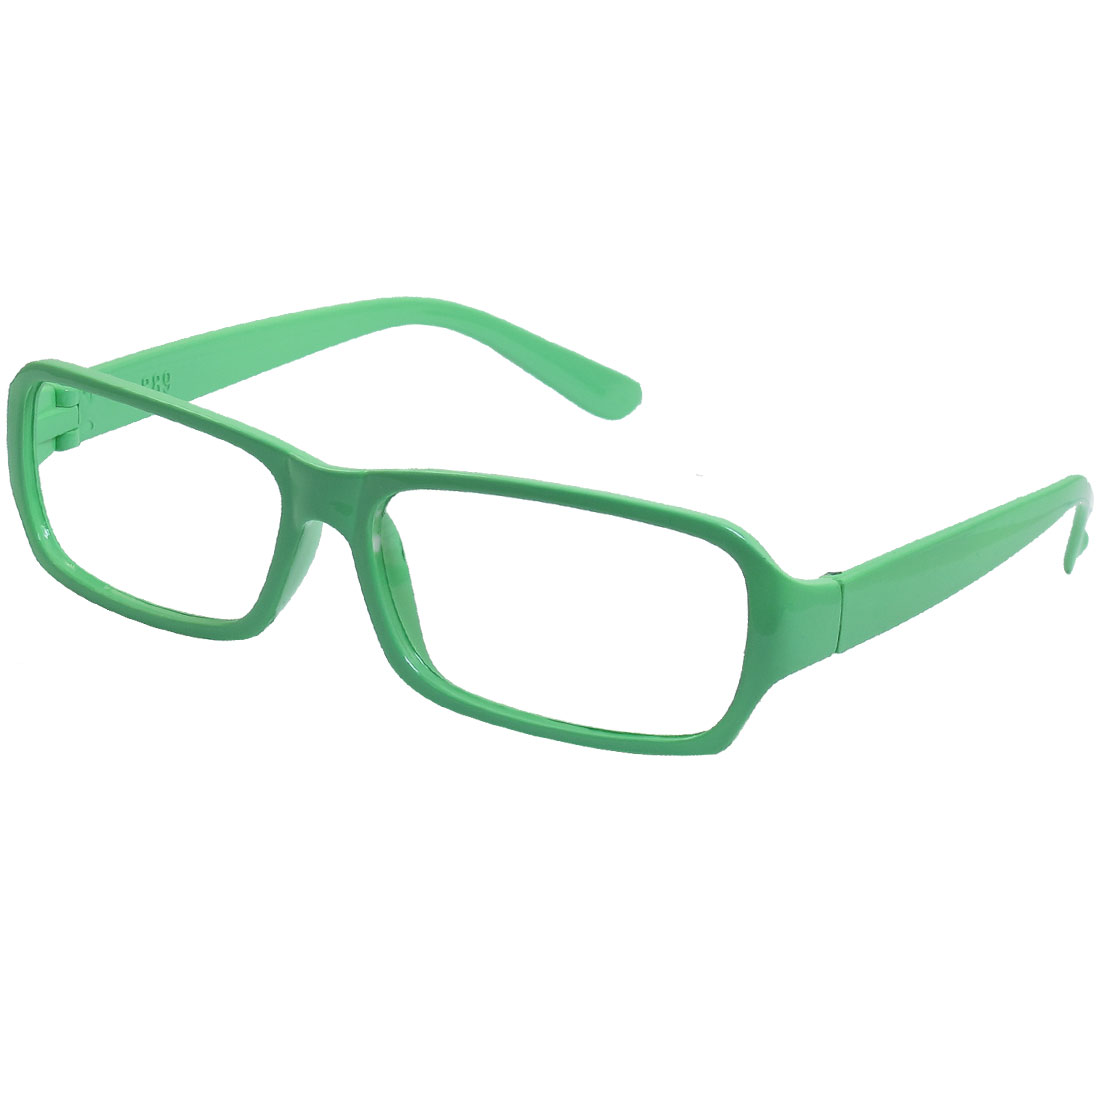 Pale Green Plastic Arms Full Rim Rectangular Eyeglasses Frame for Ladies